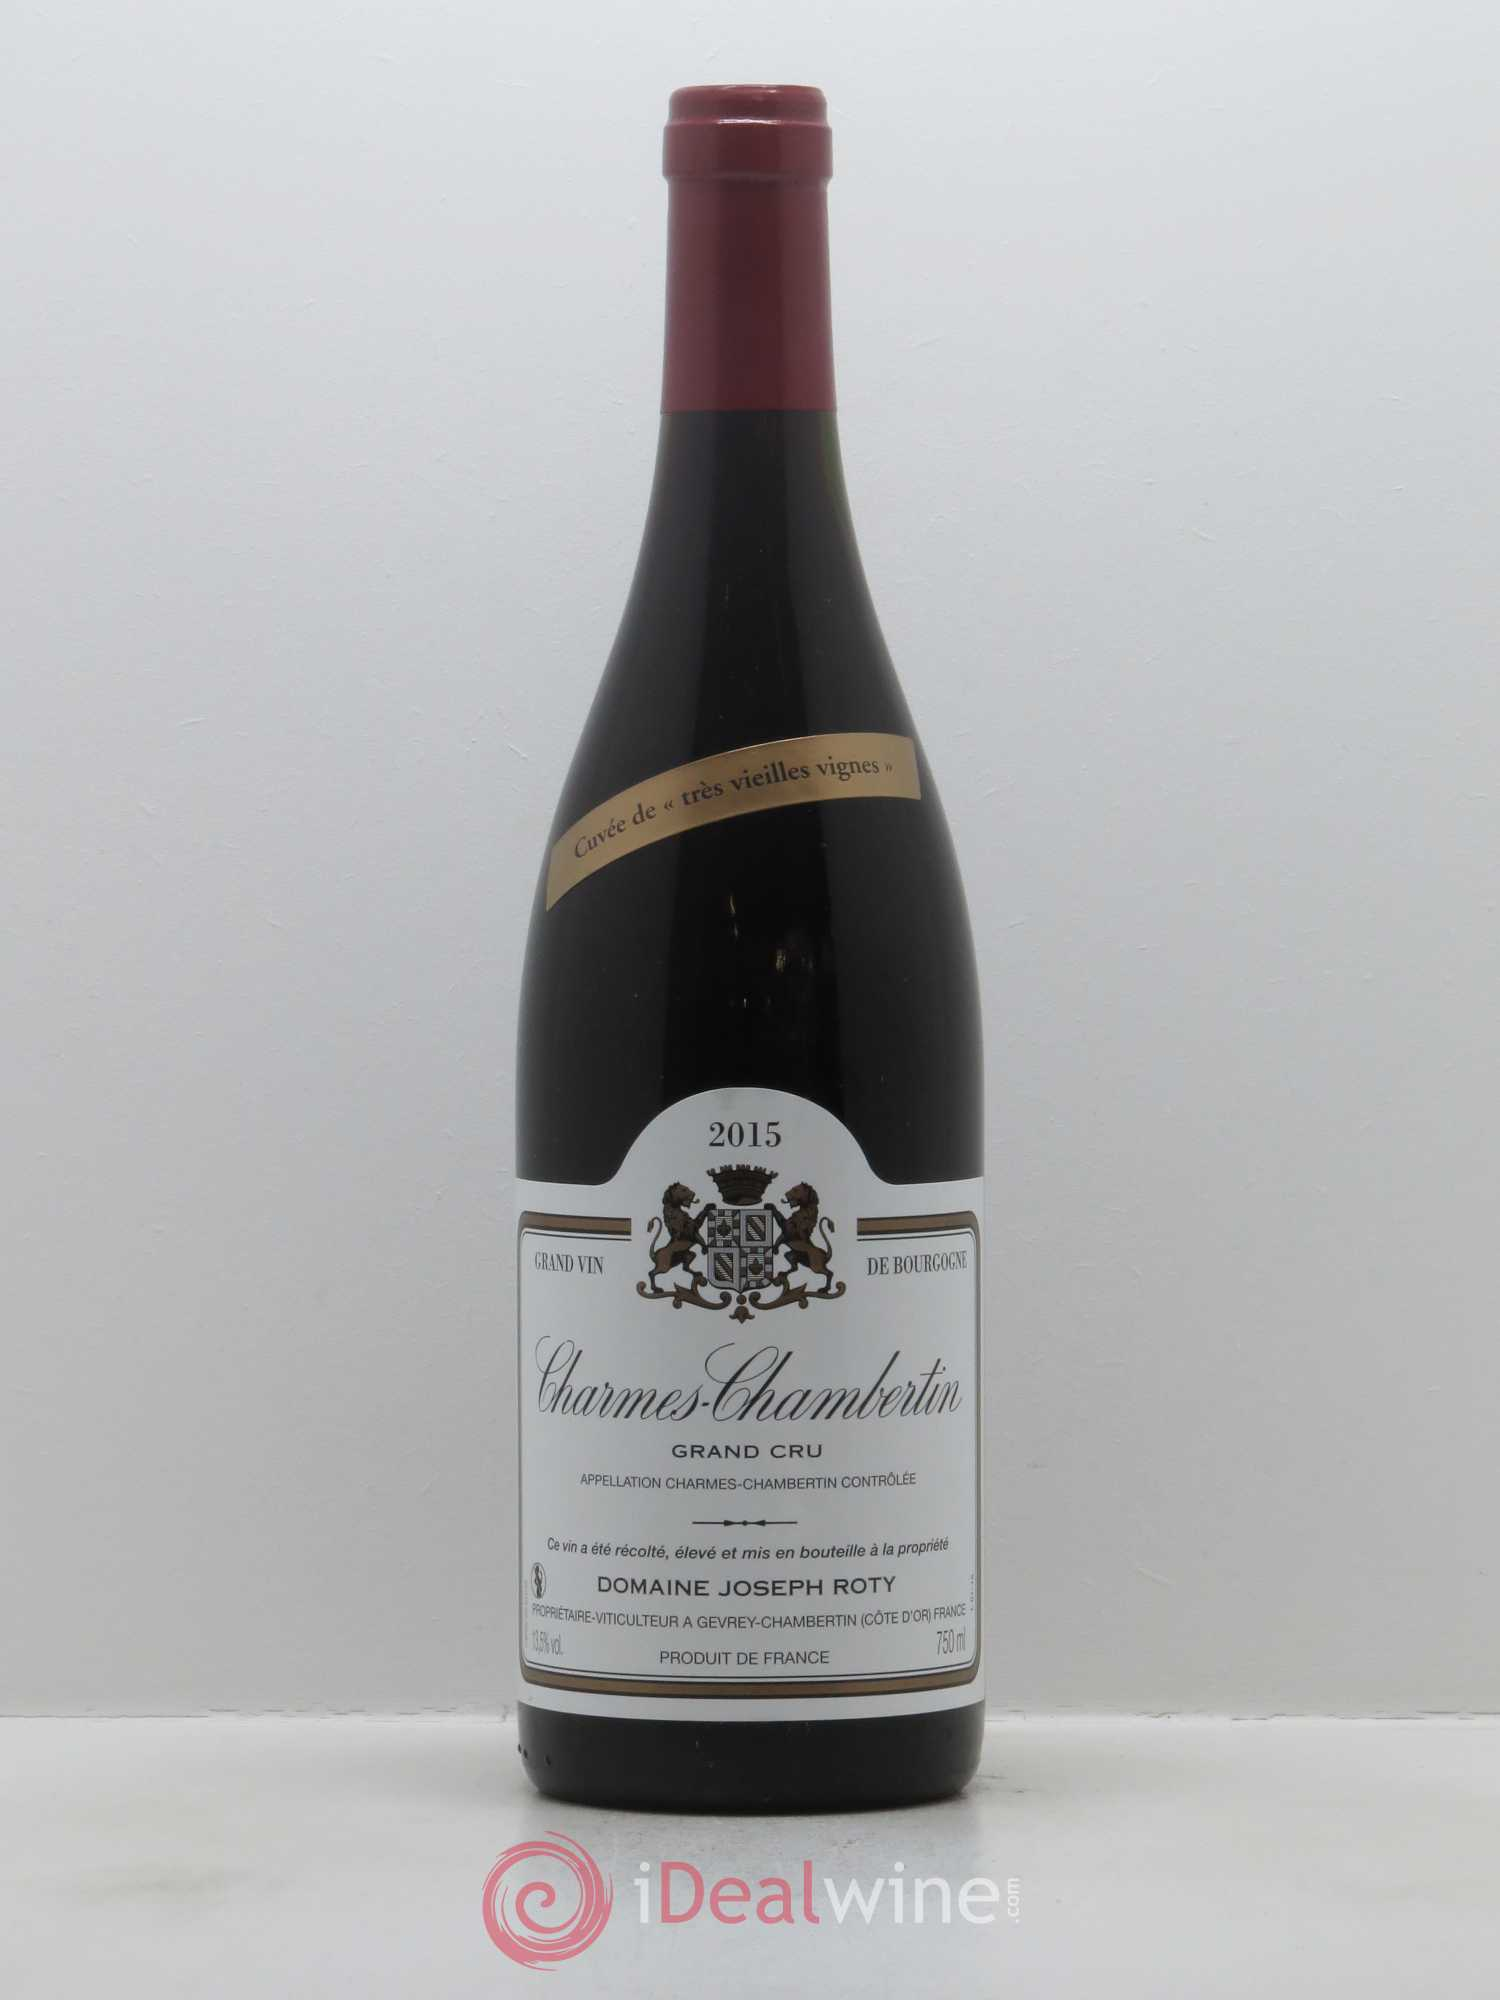 Charmes-Chambertin Grand Cru Très vieilles vignes Joseph Roty (Domaine)  2015 - Lot of 1 Bottle